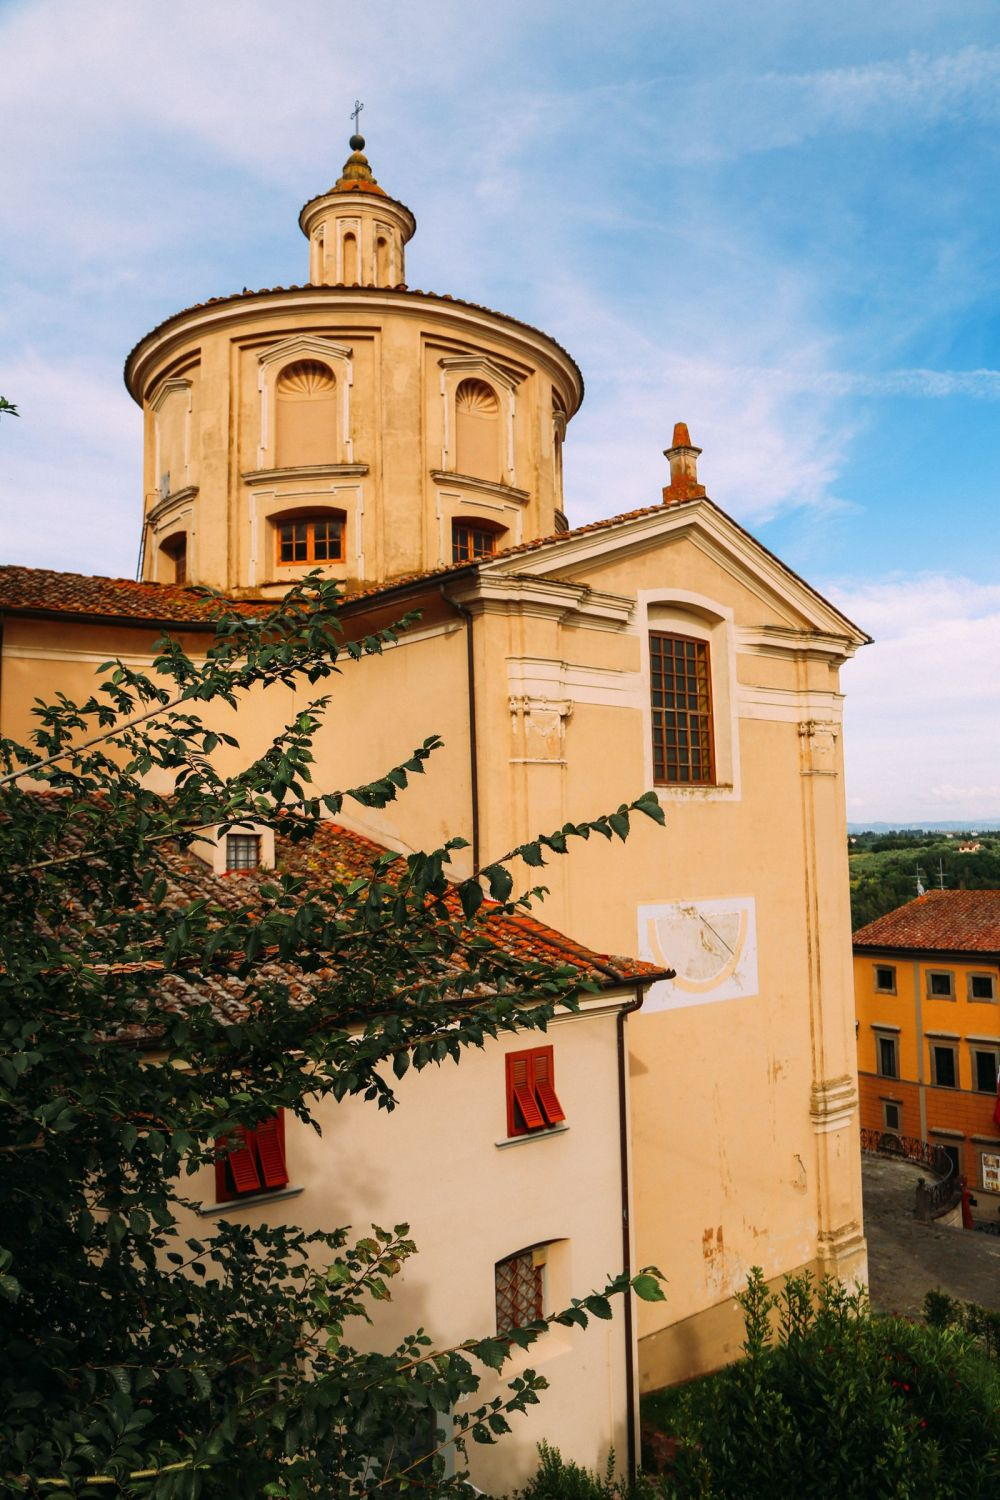 The Beautiful Tuscan Town Of San Miniato, Italy (2)